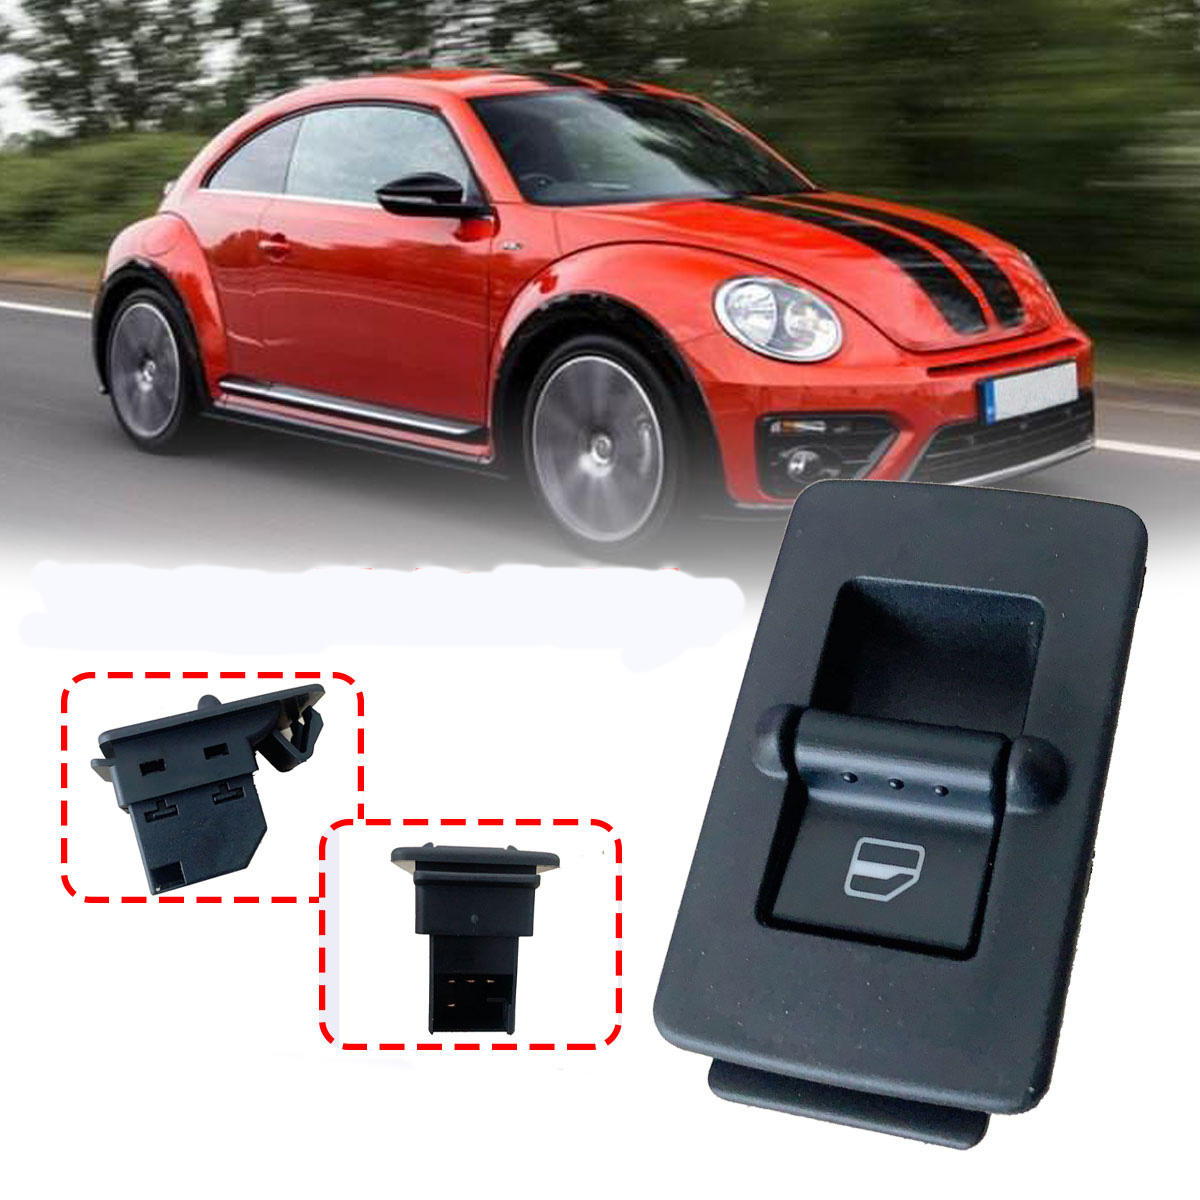 Right Side Window Switch for the Passenger For Volkswagen Beetle 1998-2010 1C0959851 1C0959855 1C0959527